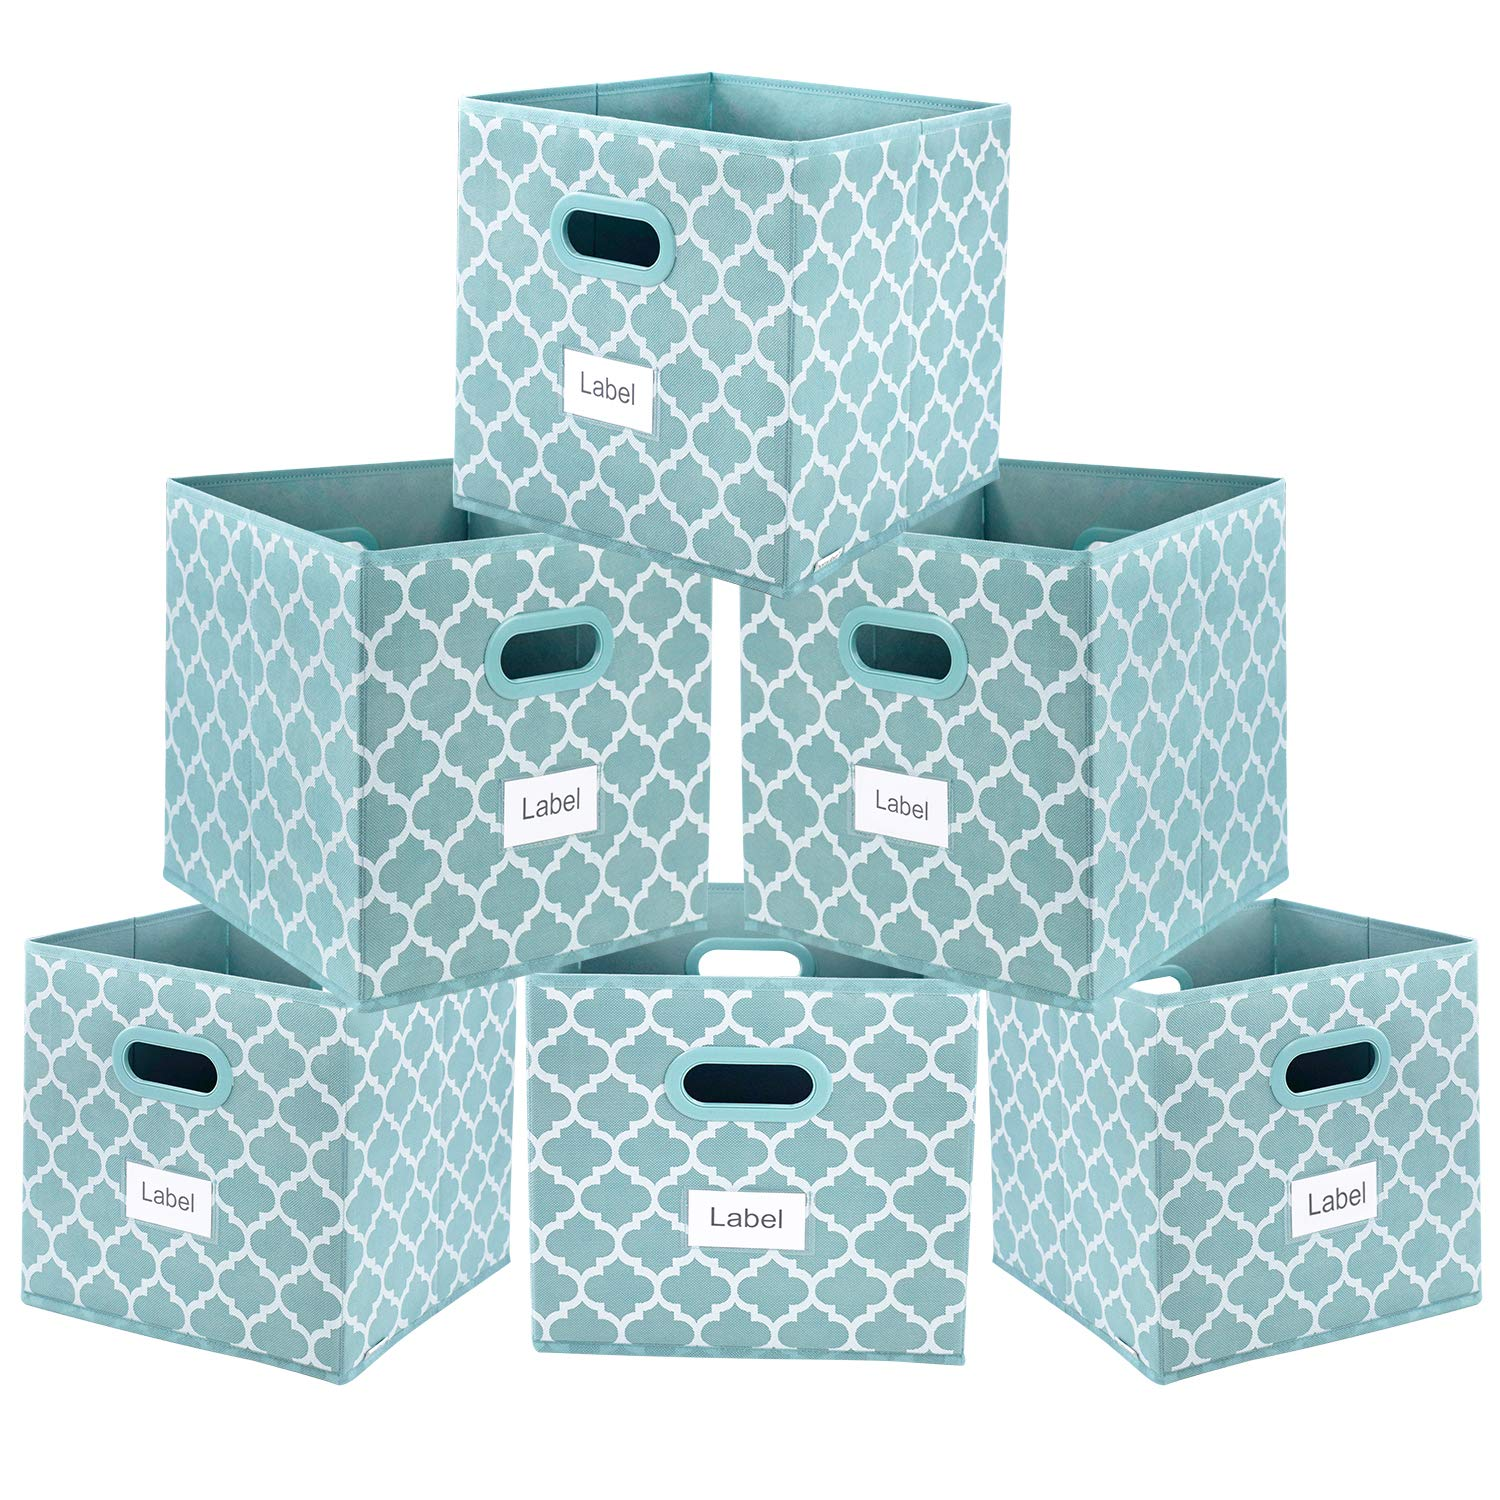 Homyfort Cloth Storage Bins,Flodable Cubes Box Baskets Containers Organizer for Drawers,Home Closet, Shelf,Nursery, Cabinet, with Dual Plastic Handles, Blue with Lantern Pattern Large Set of 6 by Homyfort